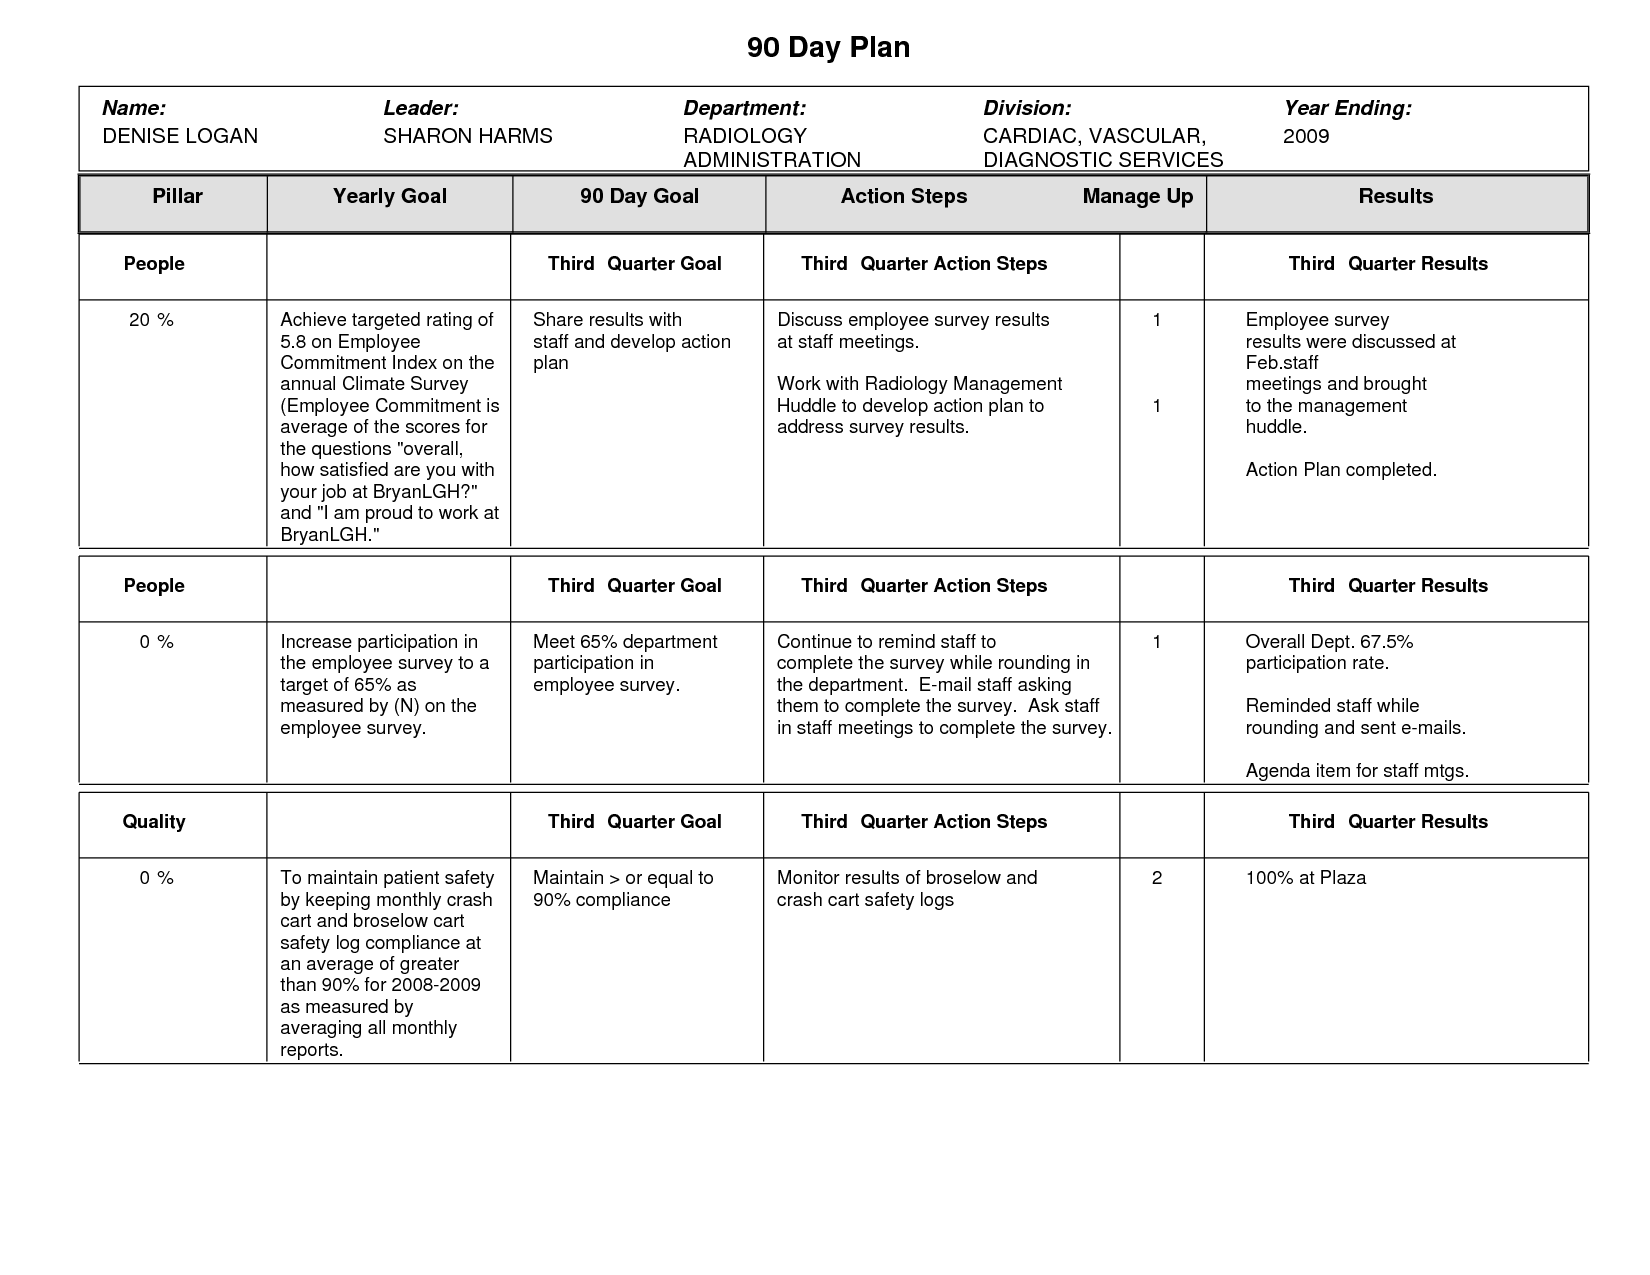 Sample 30 60 90 Day Plan Template | RMartinezedu | Pinterest